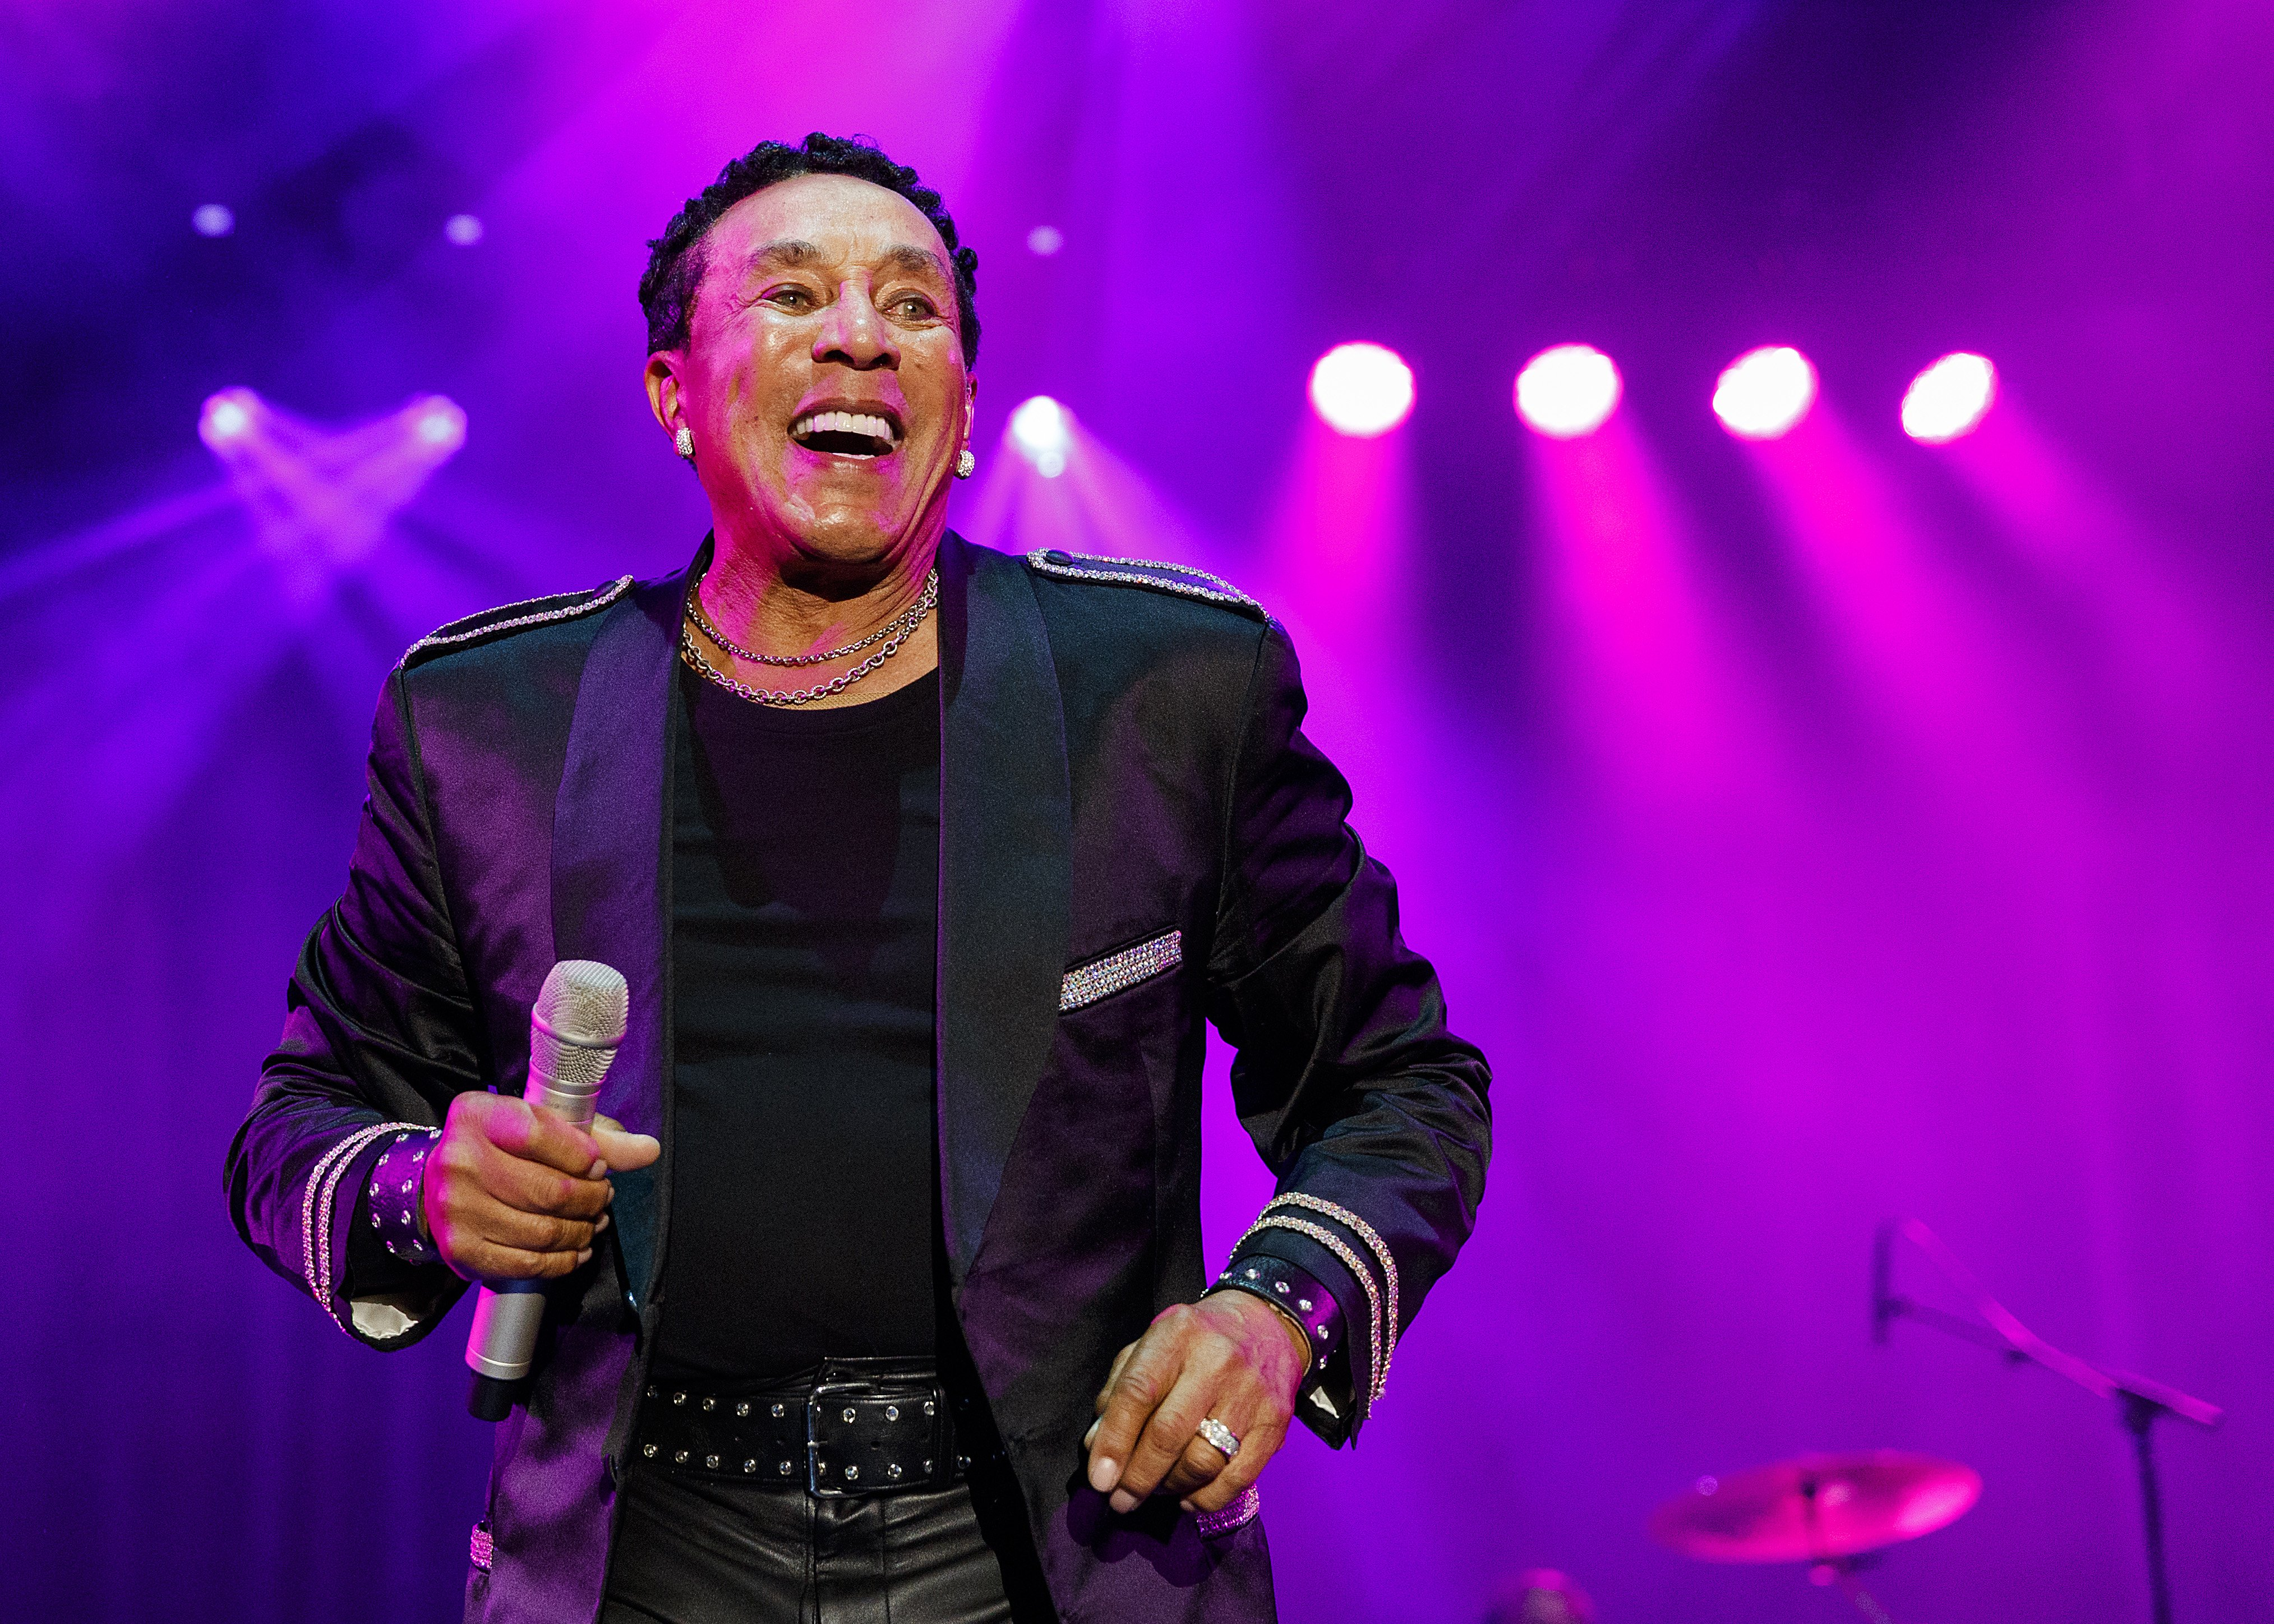 Smokey Robinson performs on stage during Summer Night Concerts at PNE Amphitheatre on August 23, 2019 in Vancouver, Canada.